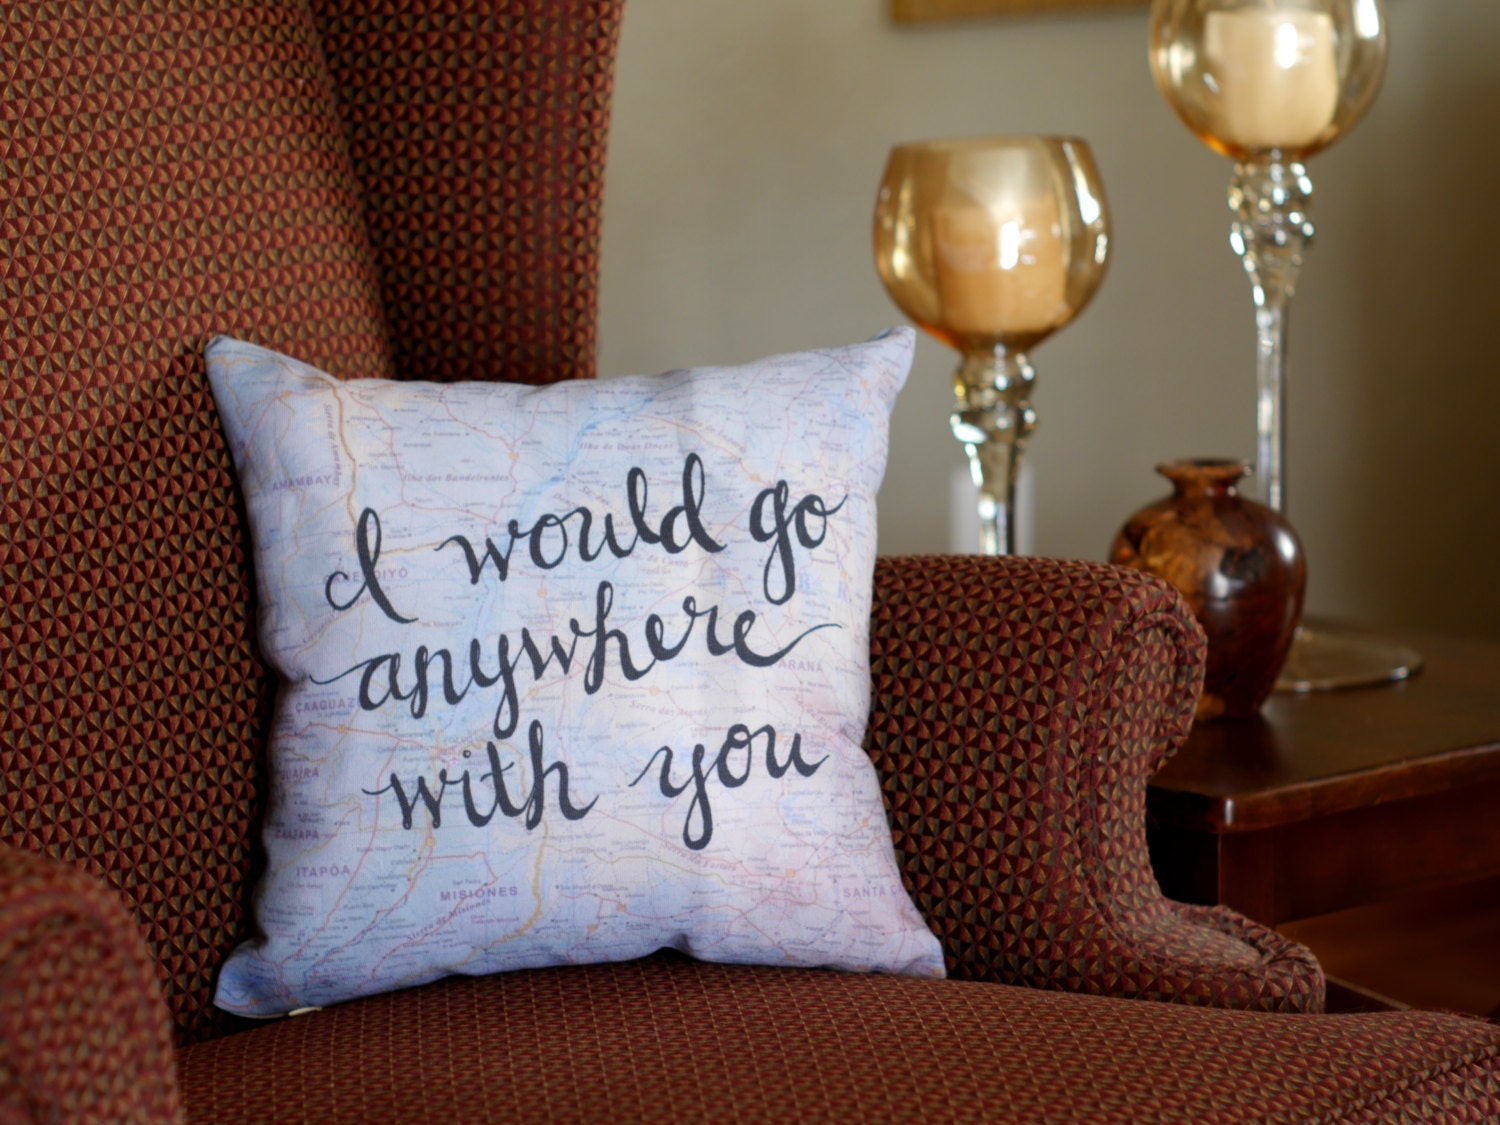 Travel Quote Throw Pillows Valentines Day Gifts for Husband